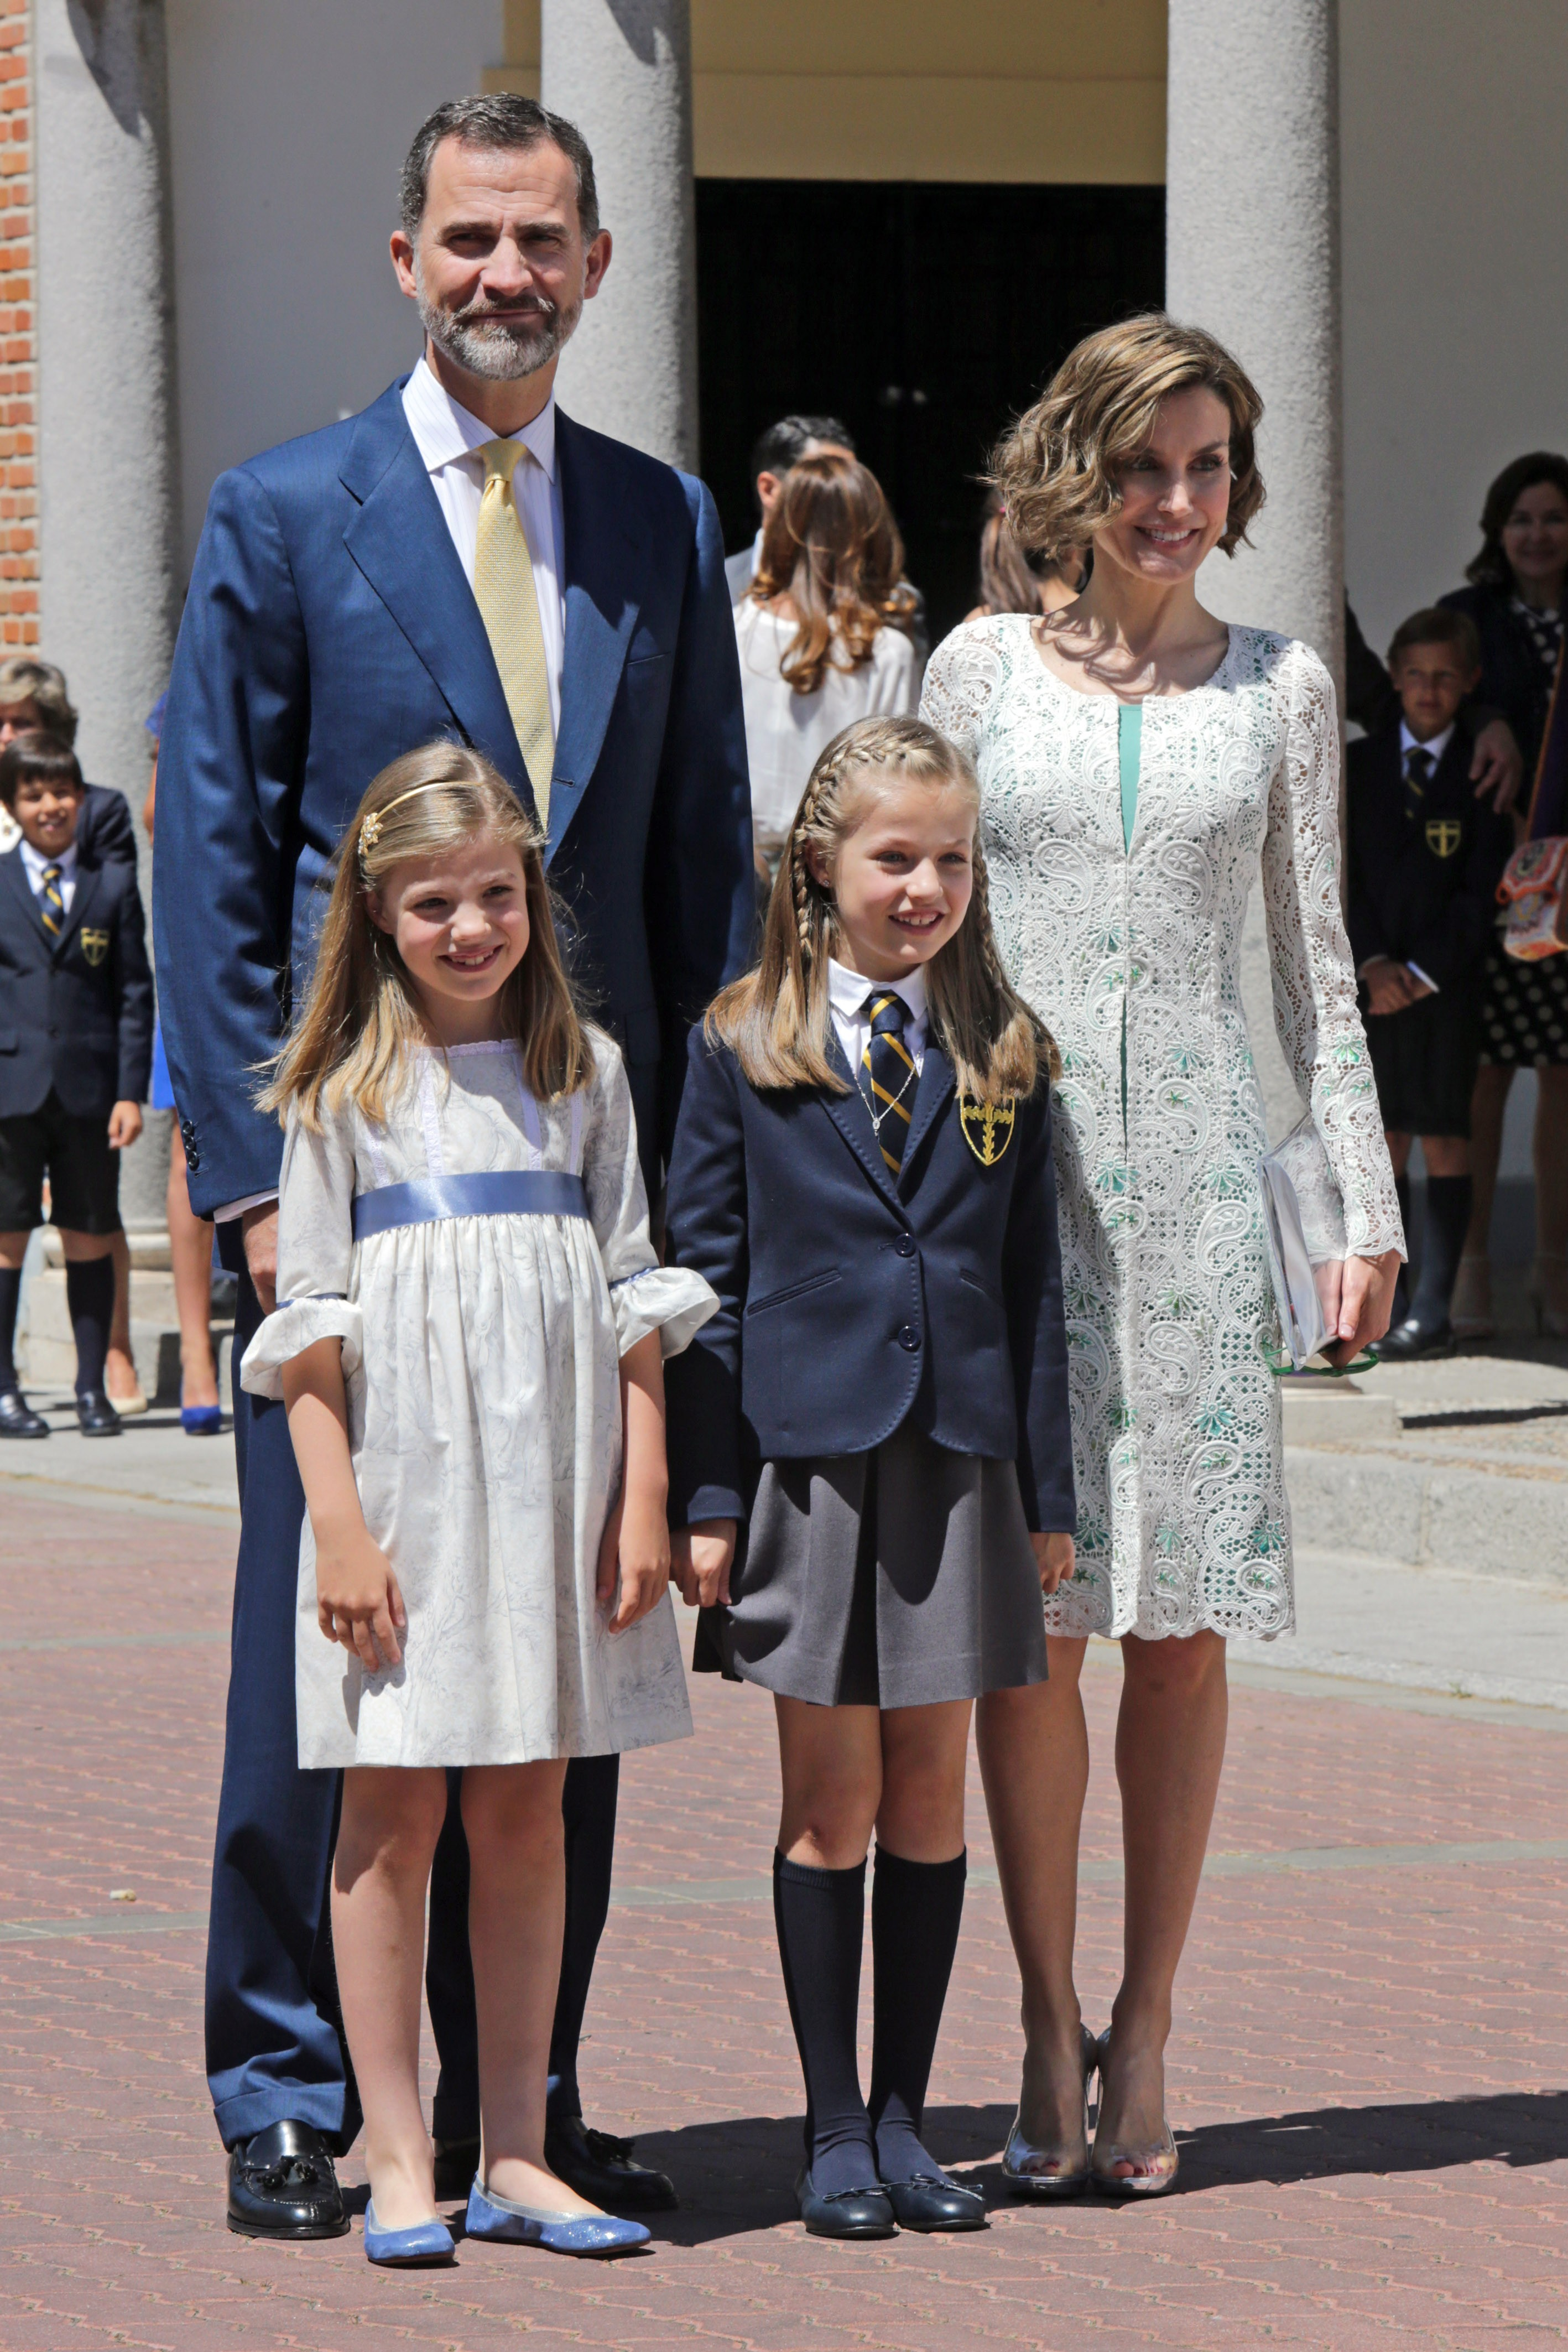 Spain's King Felipe VI, Queen Letizia and princess Sofia of Borbon attend Princess of Asturias Leonor de Borbon First Holy Communion in Madrid on Wednesday 20th May 2015